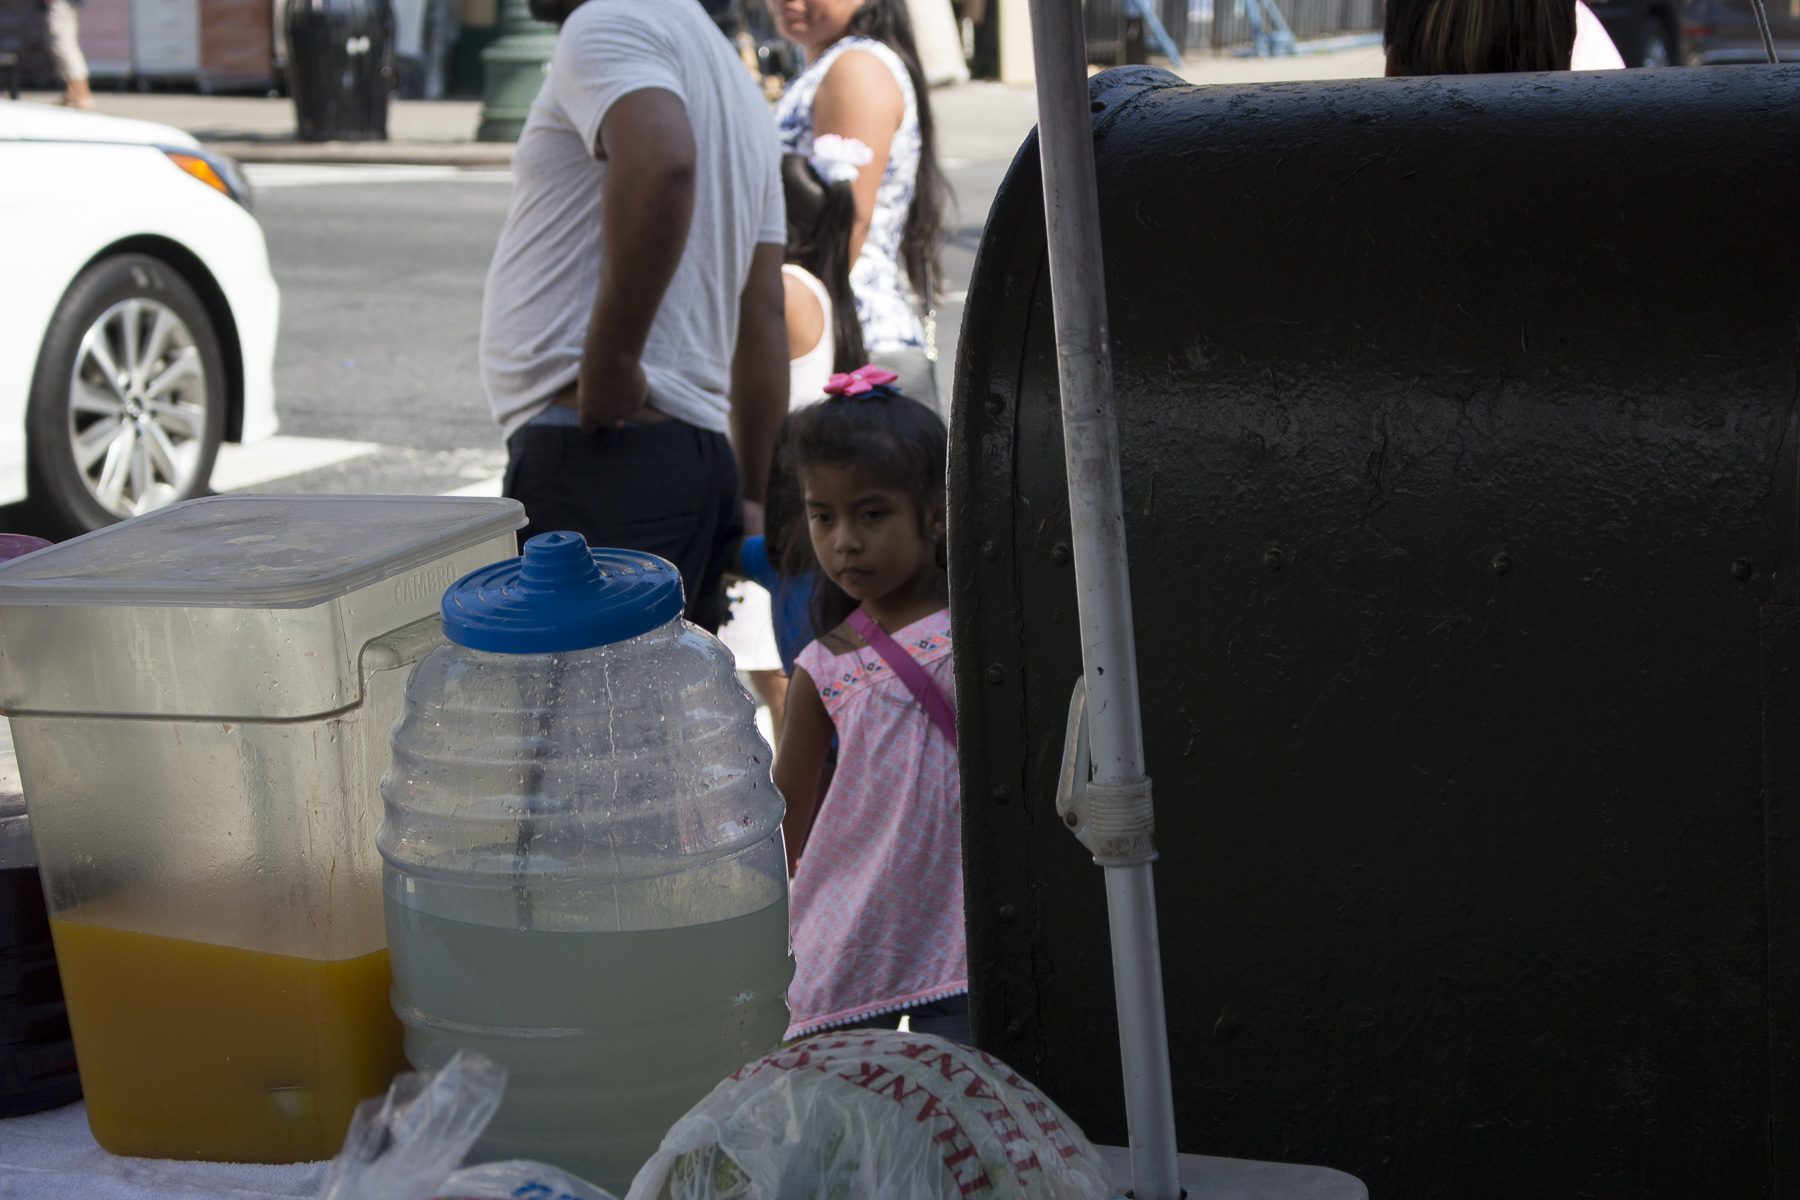 A little girl waiting with her mother to buy products from the fruit stand on the corner of 5th and 56th street. She is gazing at the limonada and jugo de mango that is for sale of August 22nd, 2017.